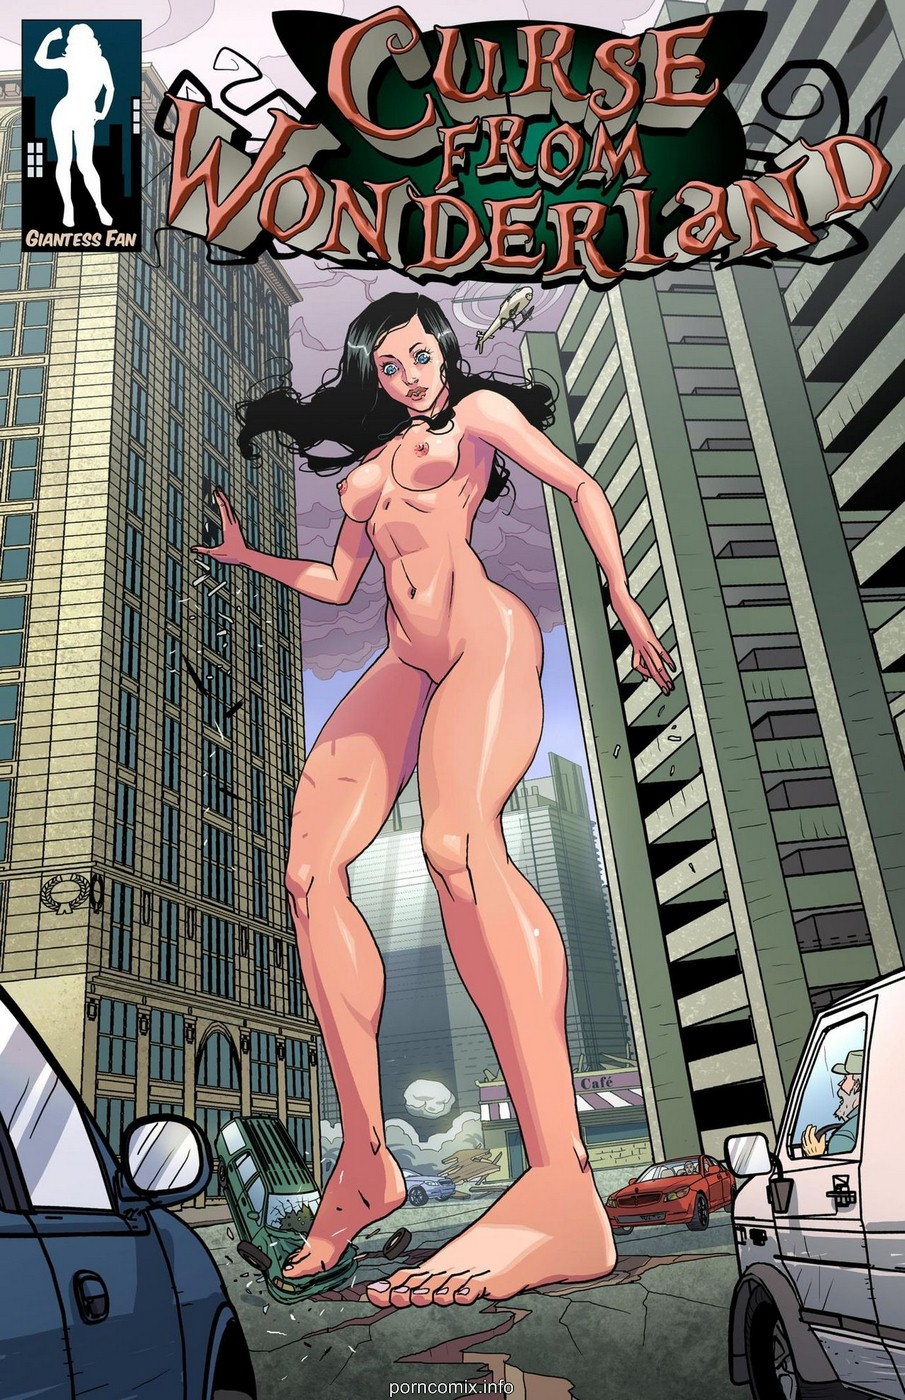 Porn Comics - Curse From Wonderland- Giantess Fan porn comics 8 muses